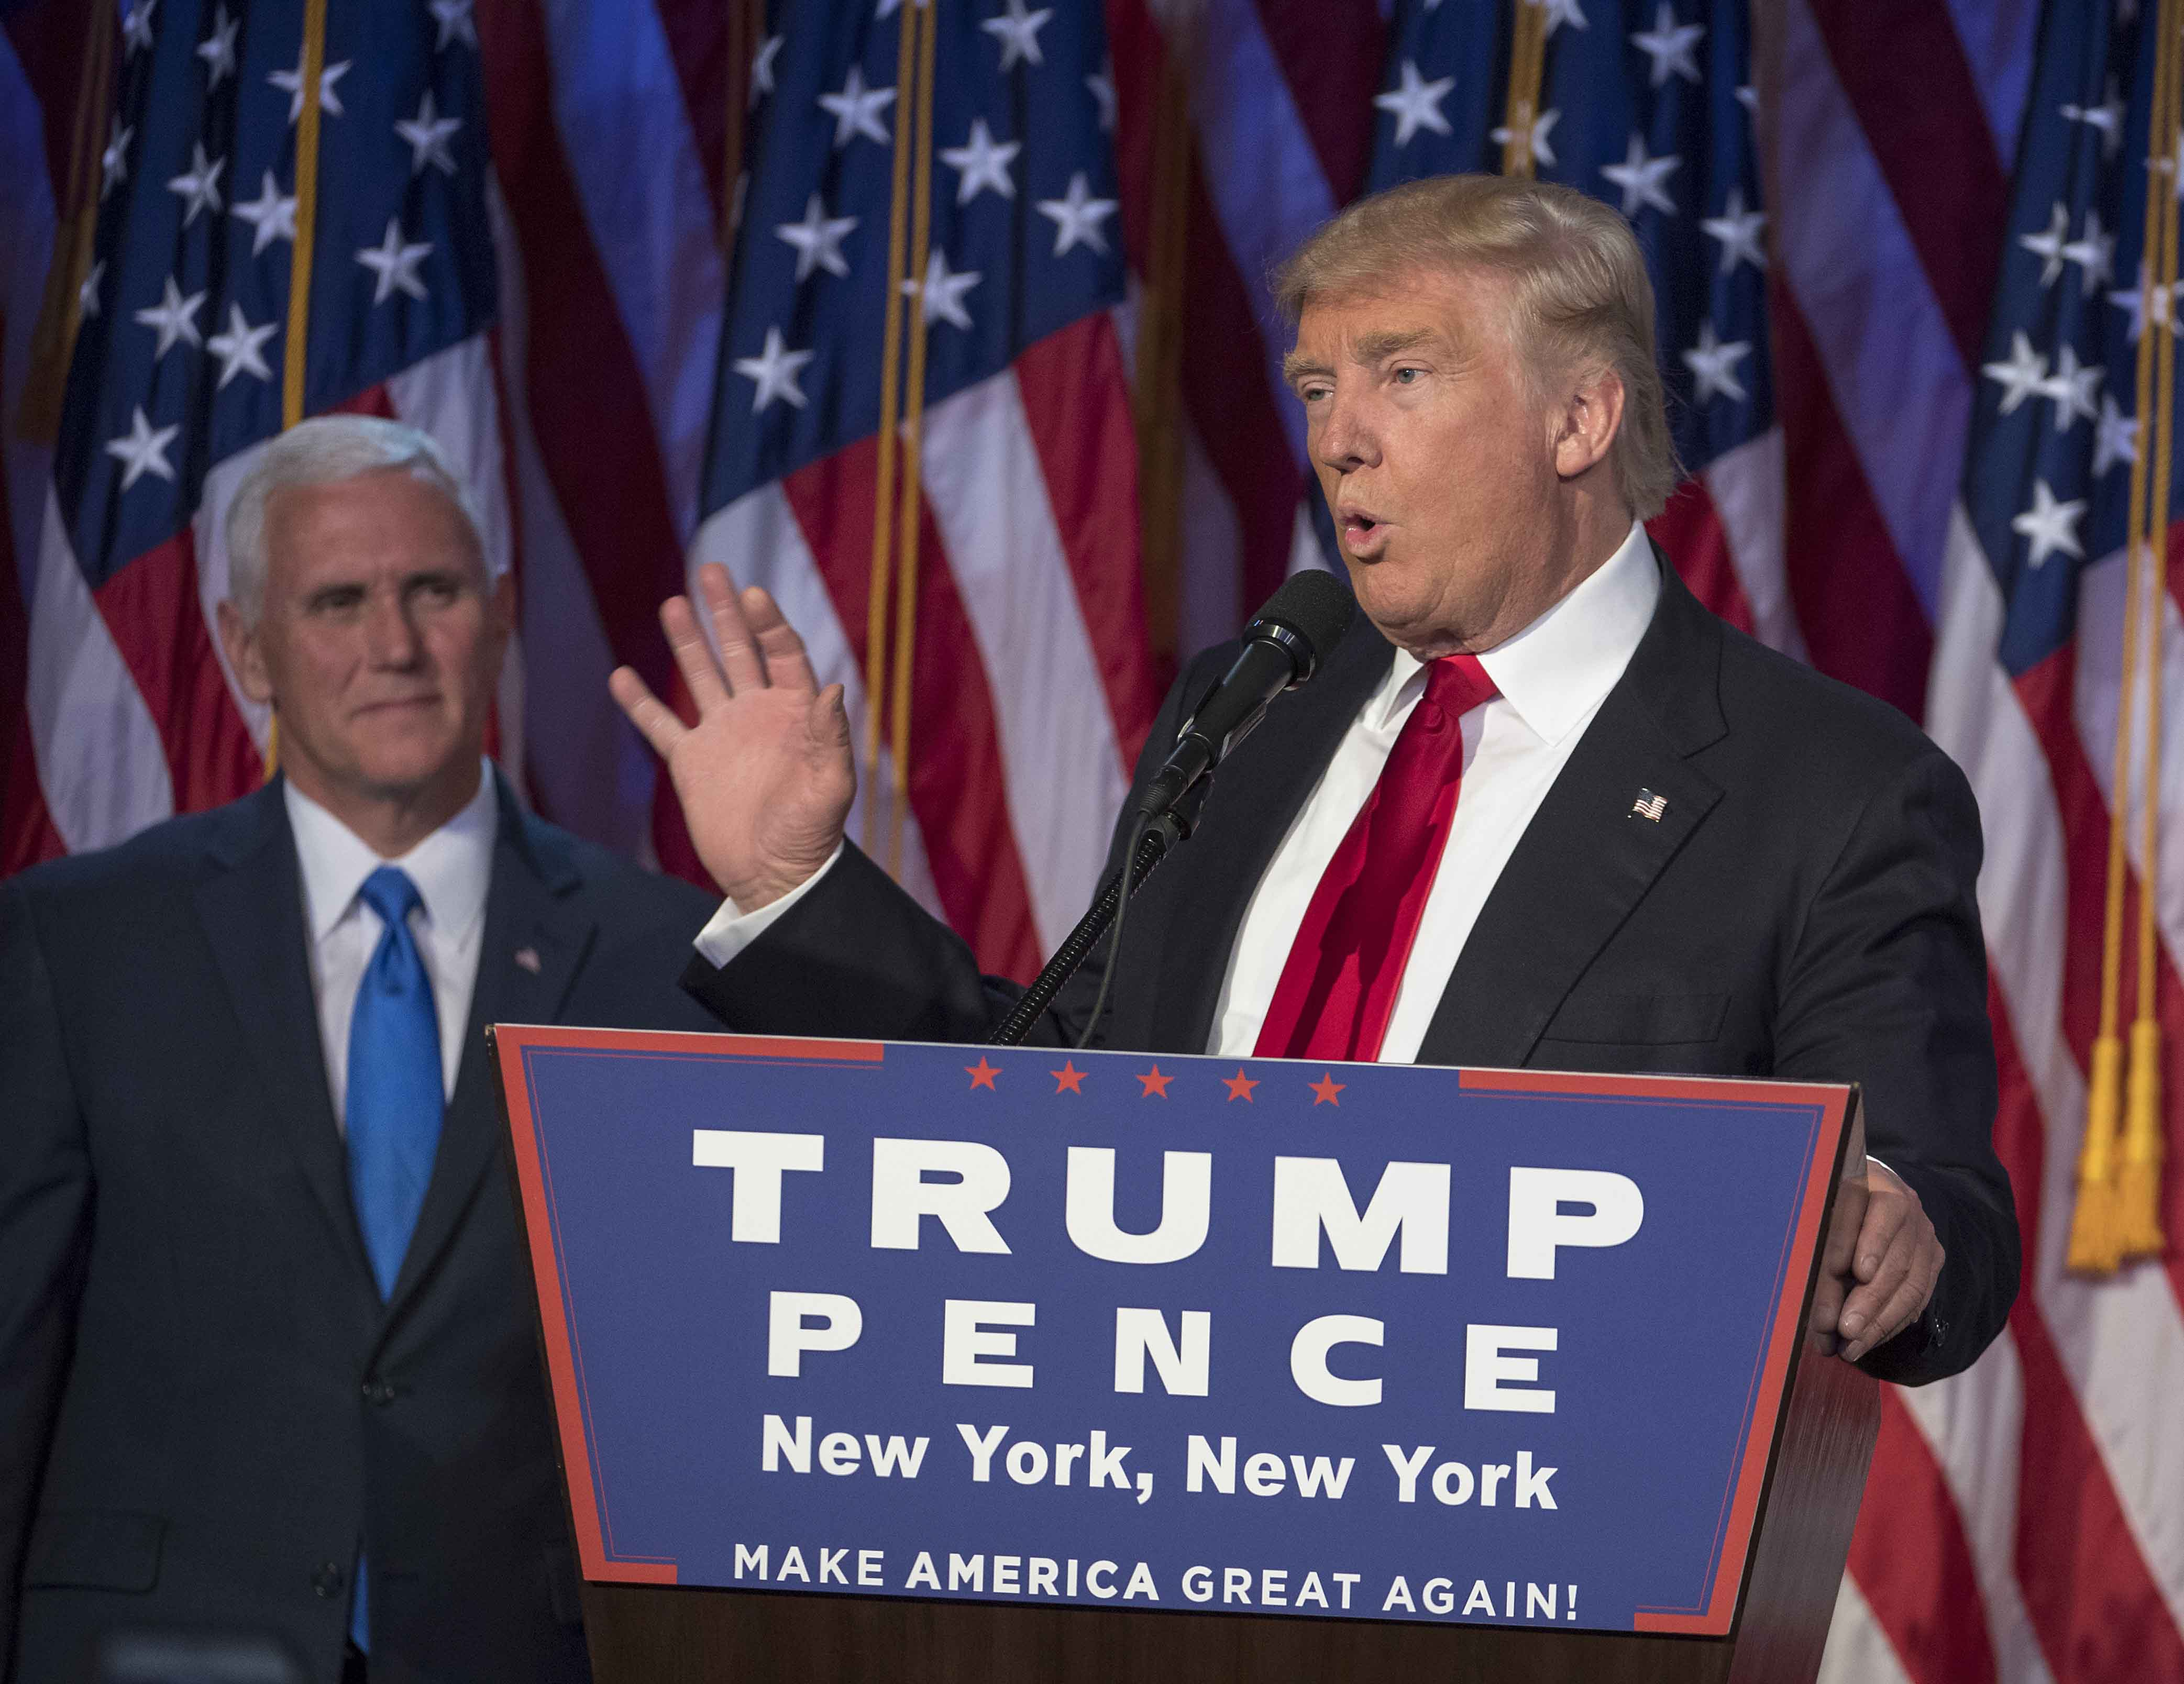 President-elect Donald Trump, joined on stage by running mate Mike Pence, speaks to supporters at the Election Night Party at the Hilton Midtown Hotel in New York City on Wednesday, Nov. 9, 2016. (J. Conrad Williams Jr./Newsday/TNS)